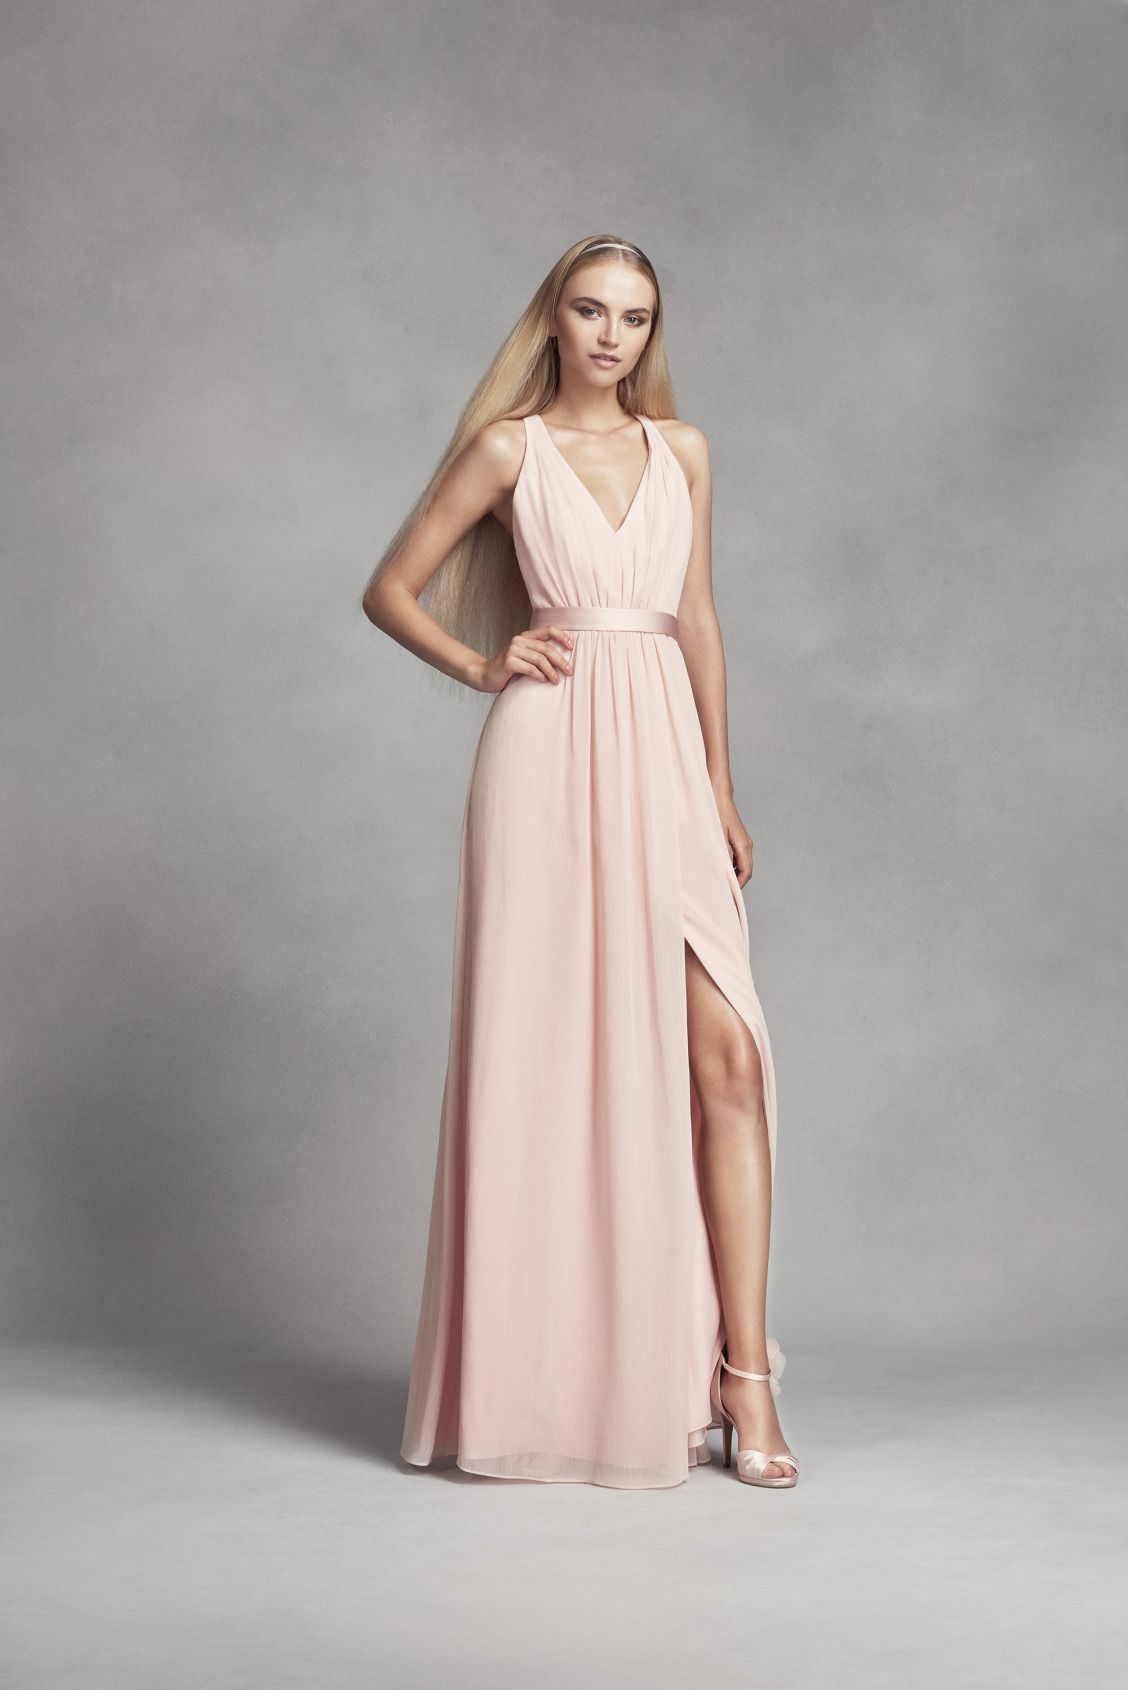 60807250a35ef Long Petal Pink Halter Chiffon Dress with Low Crisscross Back WHITE by Vera  Wang bridesmaid dress available at David's Bridal